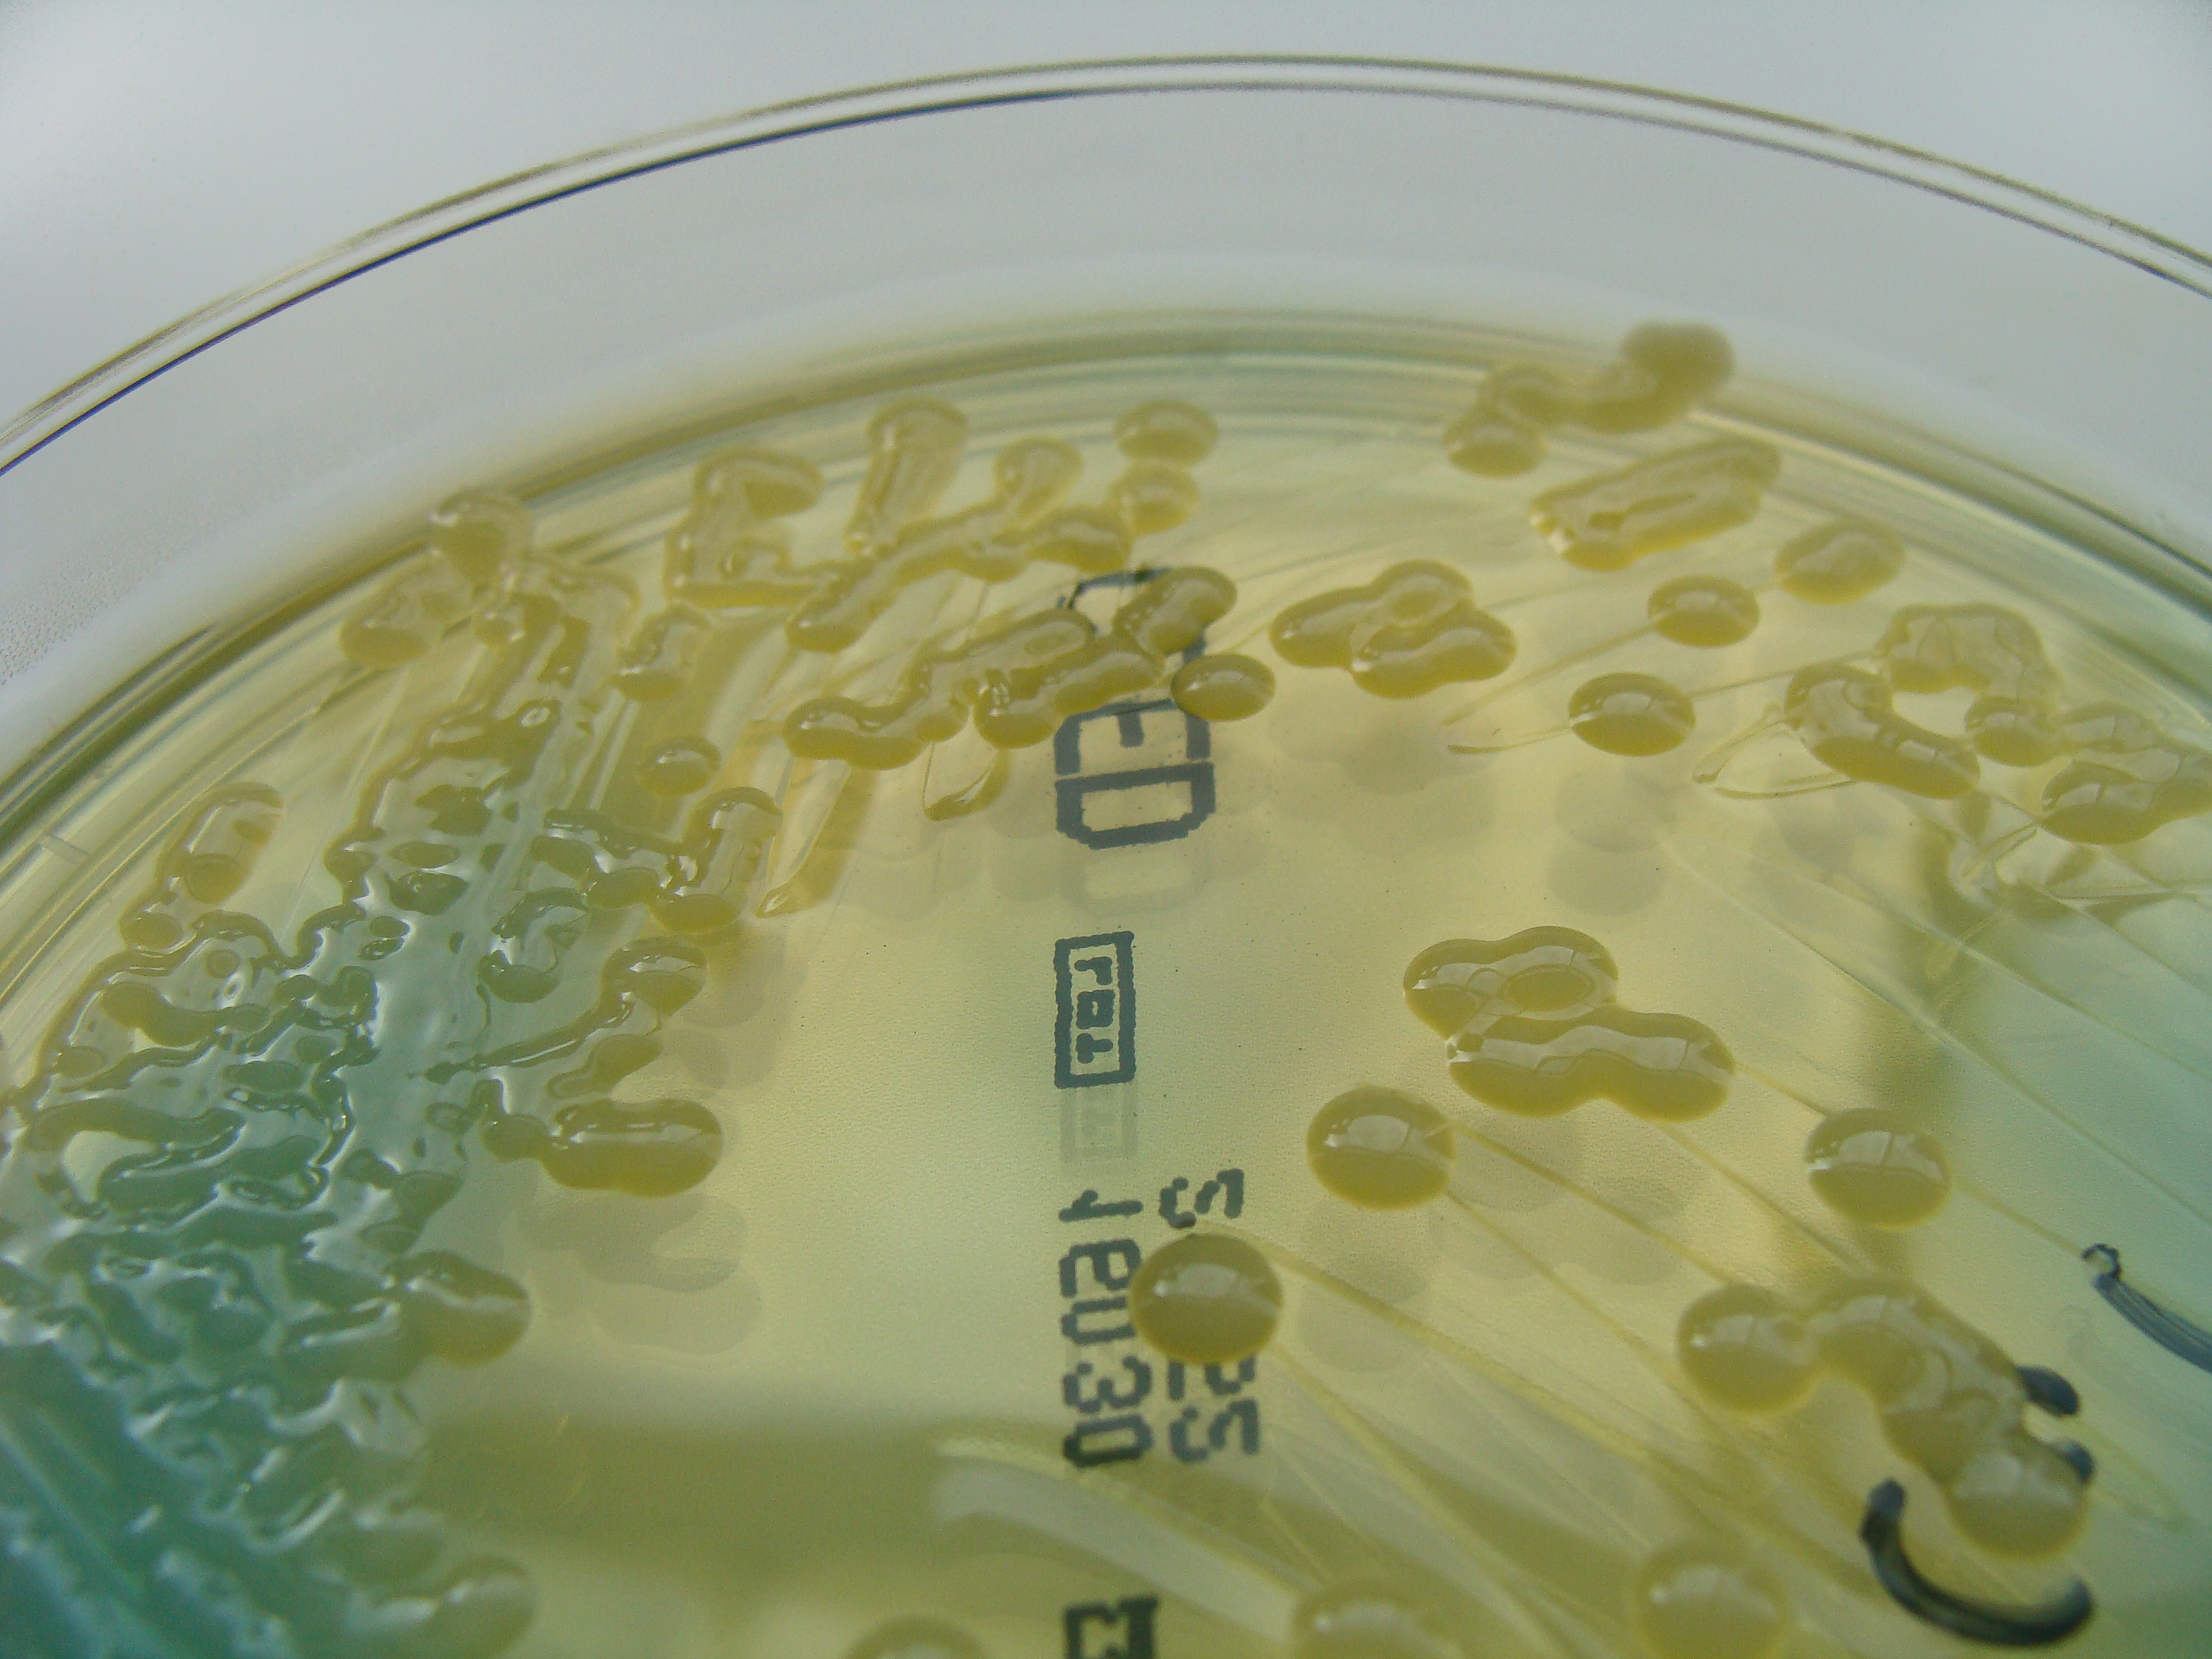 By Nathan Reading from Halesowen, UK (Klebsiella pneumoniae on C.L.E.D. Agar - detail) [CC BY 2.0 (http://creativecommons.org/licenses/by/2.0)], via Wikimedia Commons